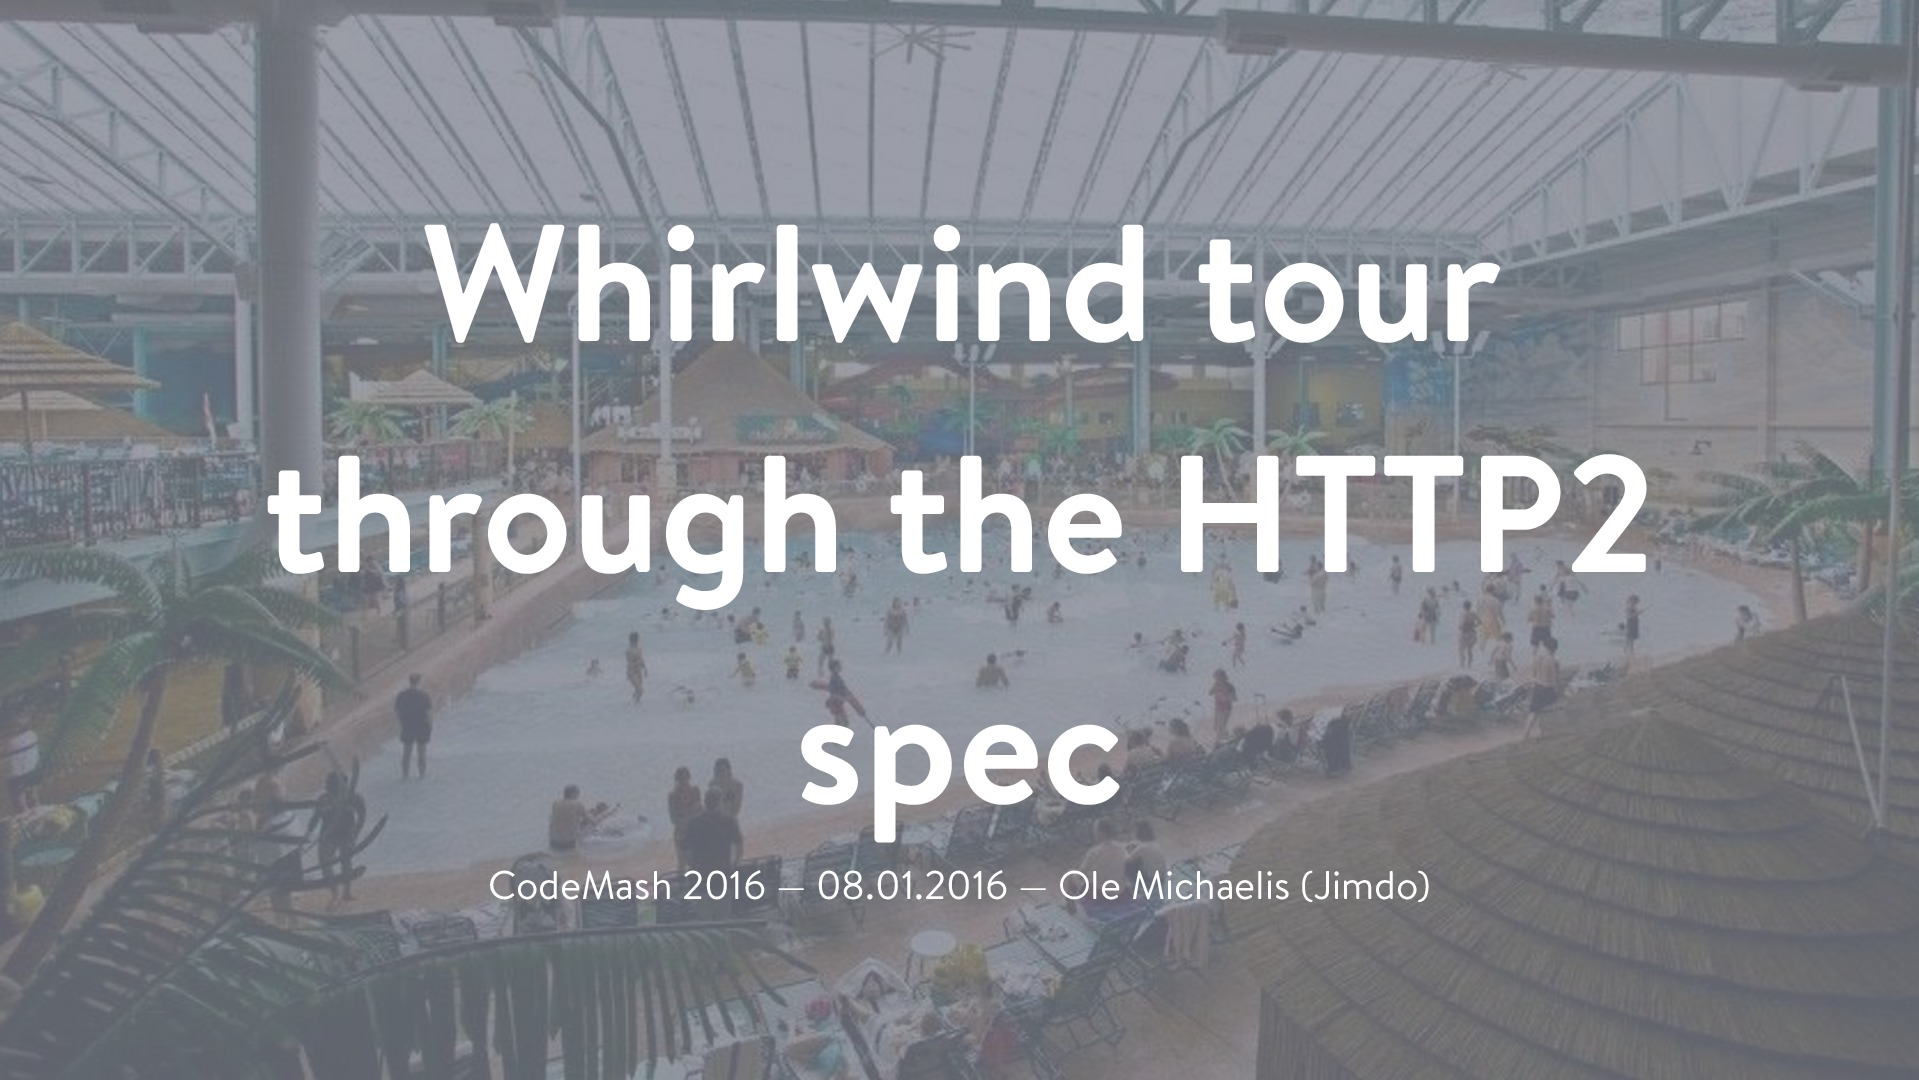 Whirlwind tour through the HTTP2 spec